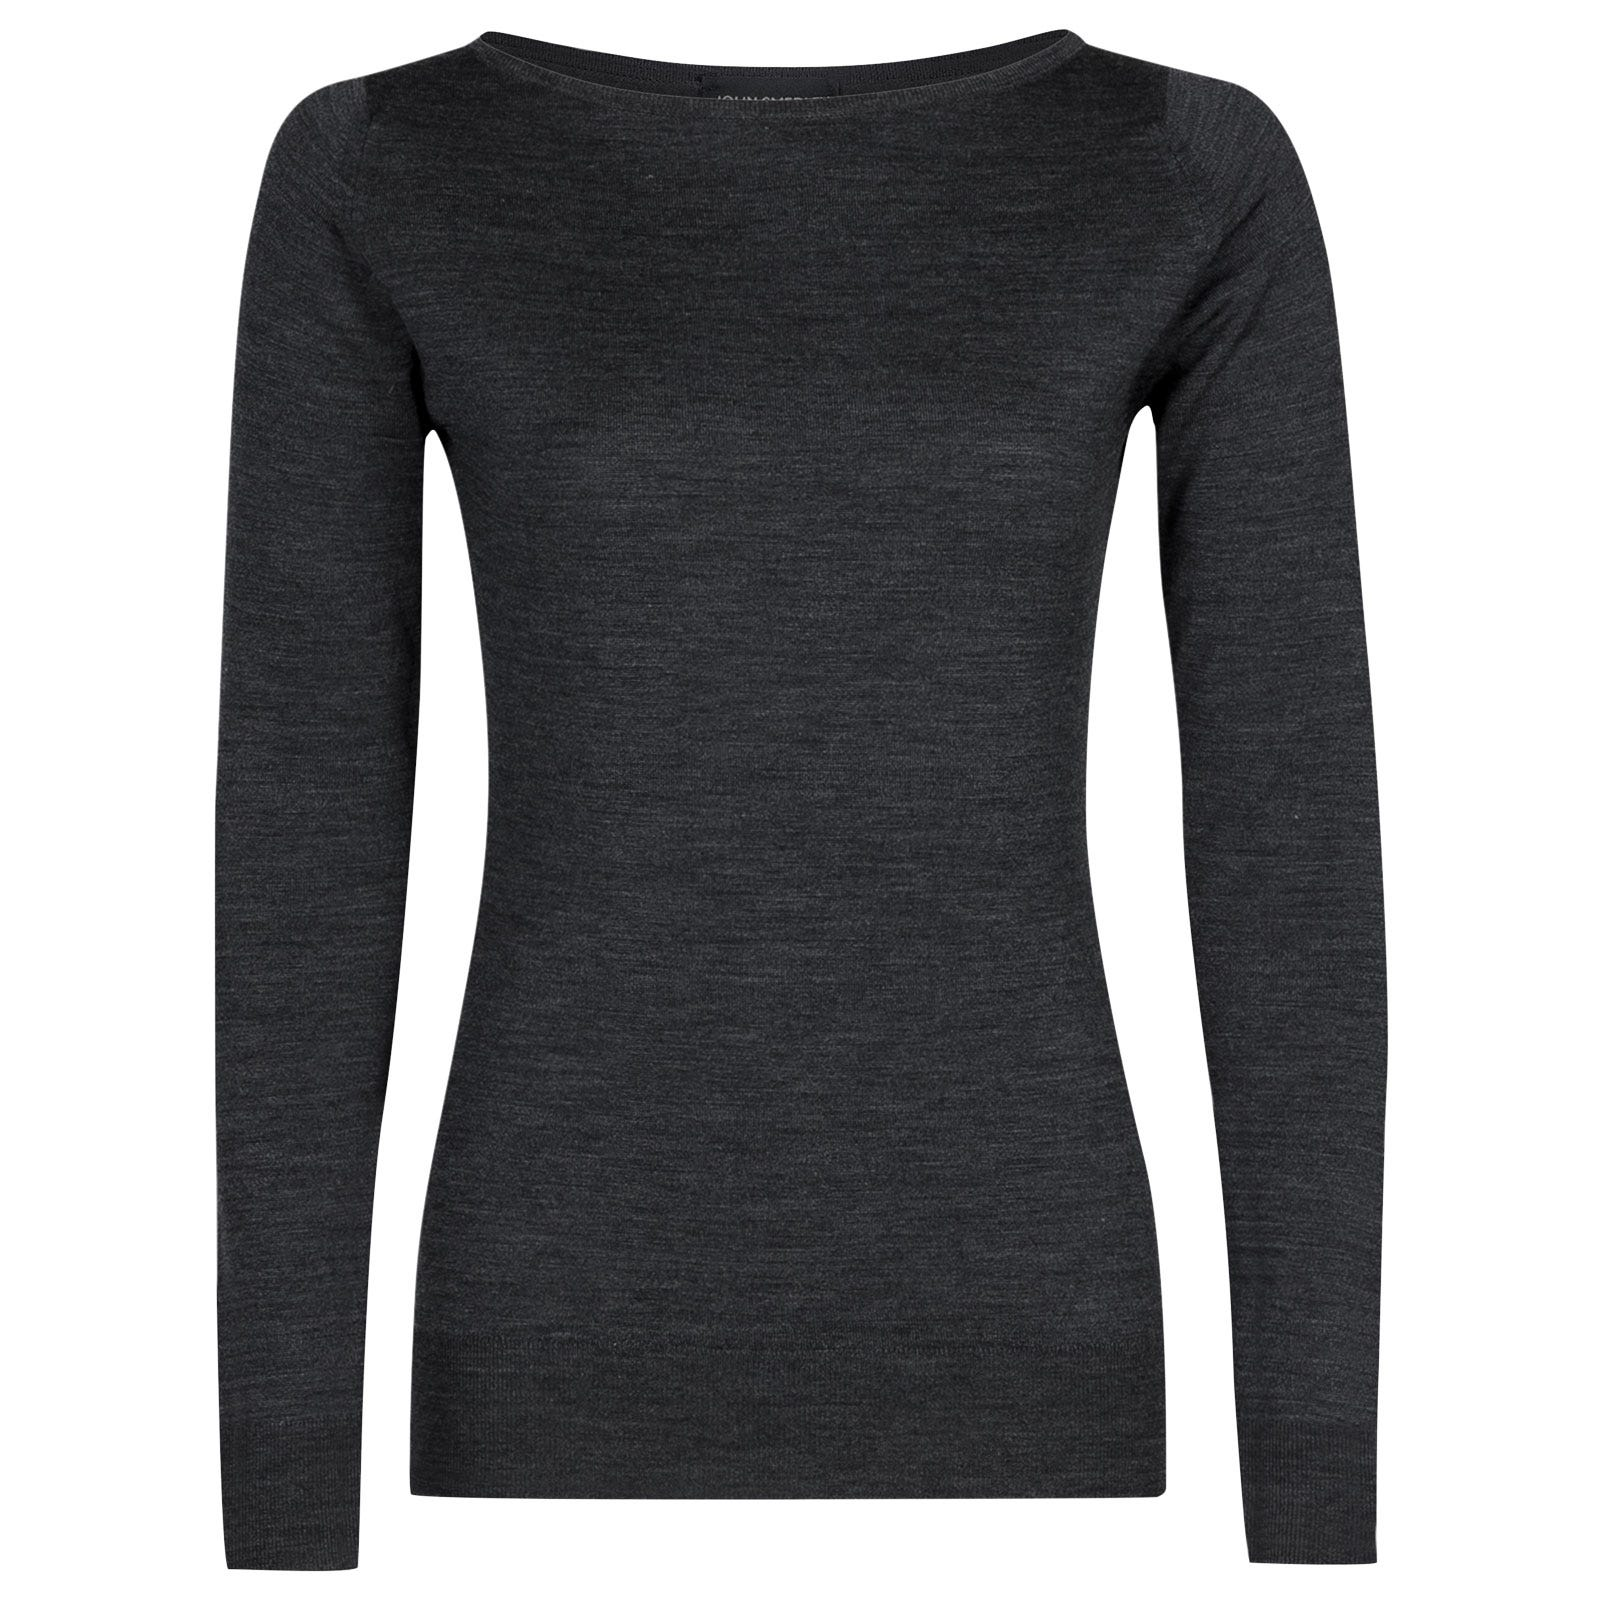 John Smedley susan Merino Wool Sweater in Charcoal-XL